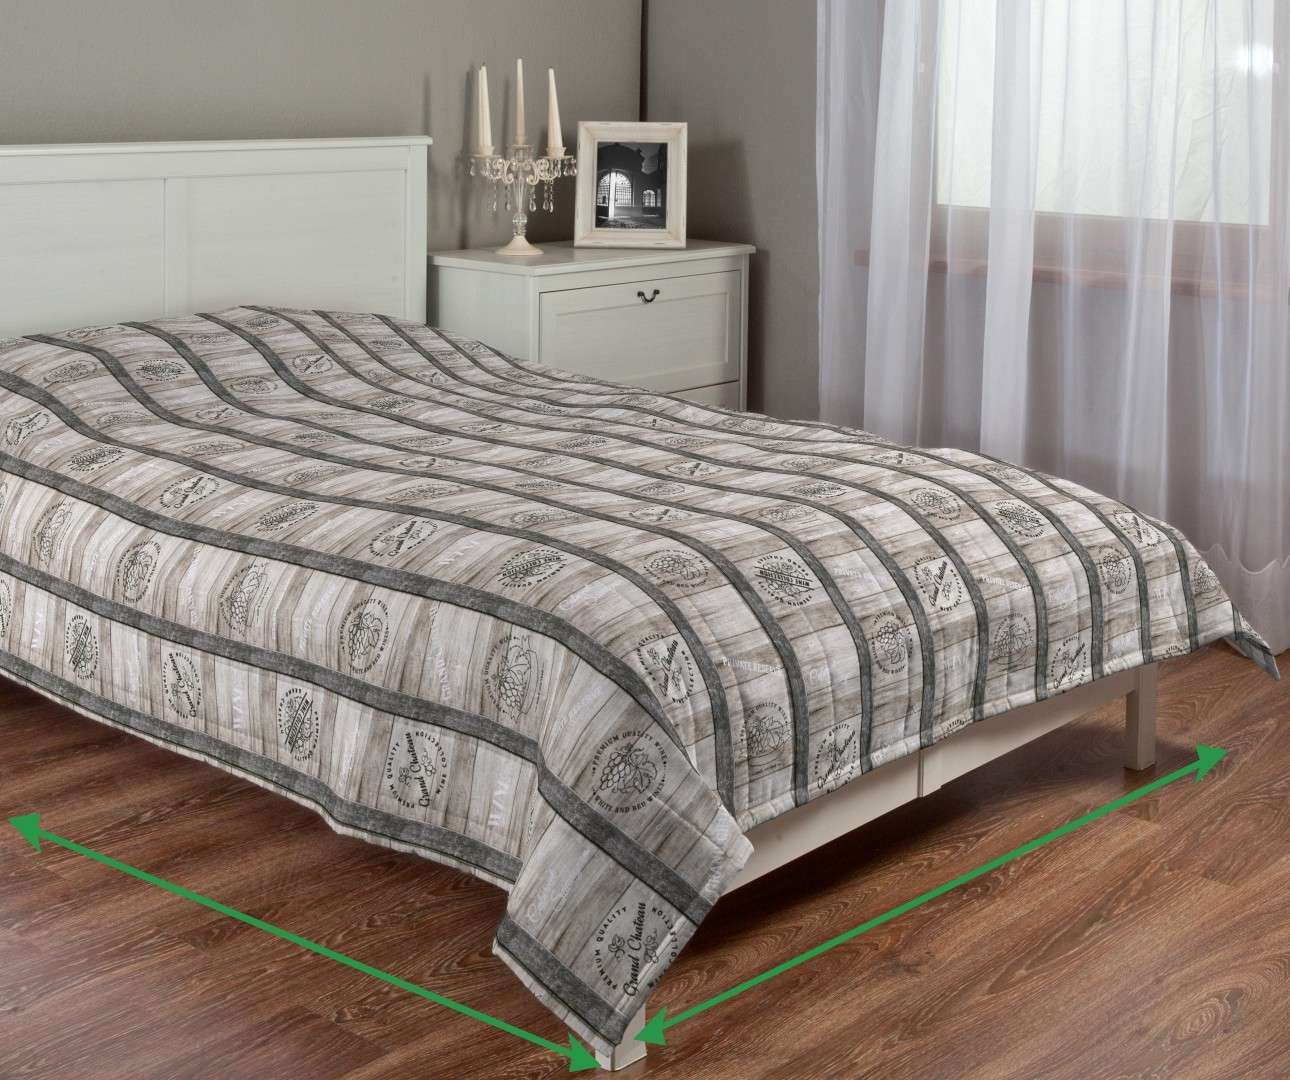 Quilted throw (vertical quilt pattern) in collection Marina, fabric: 140-12